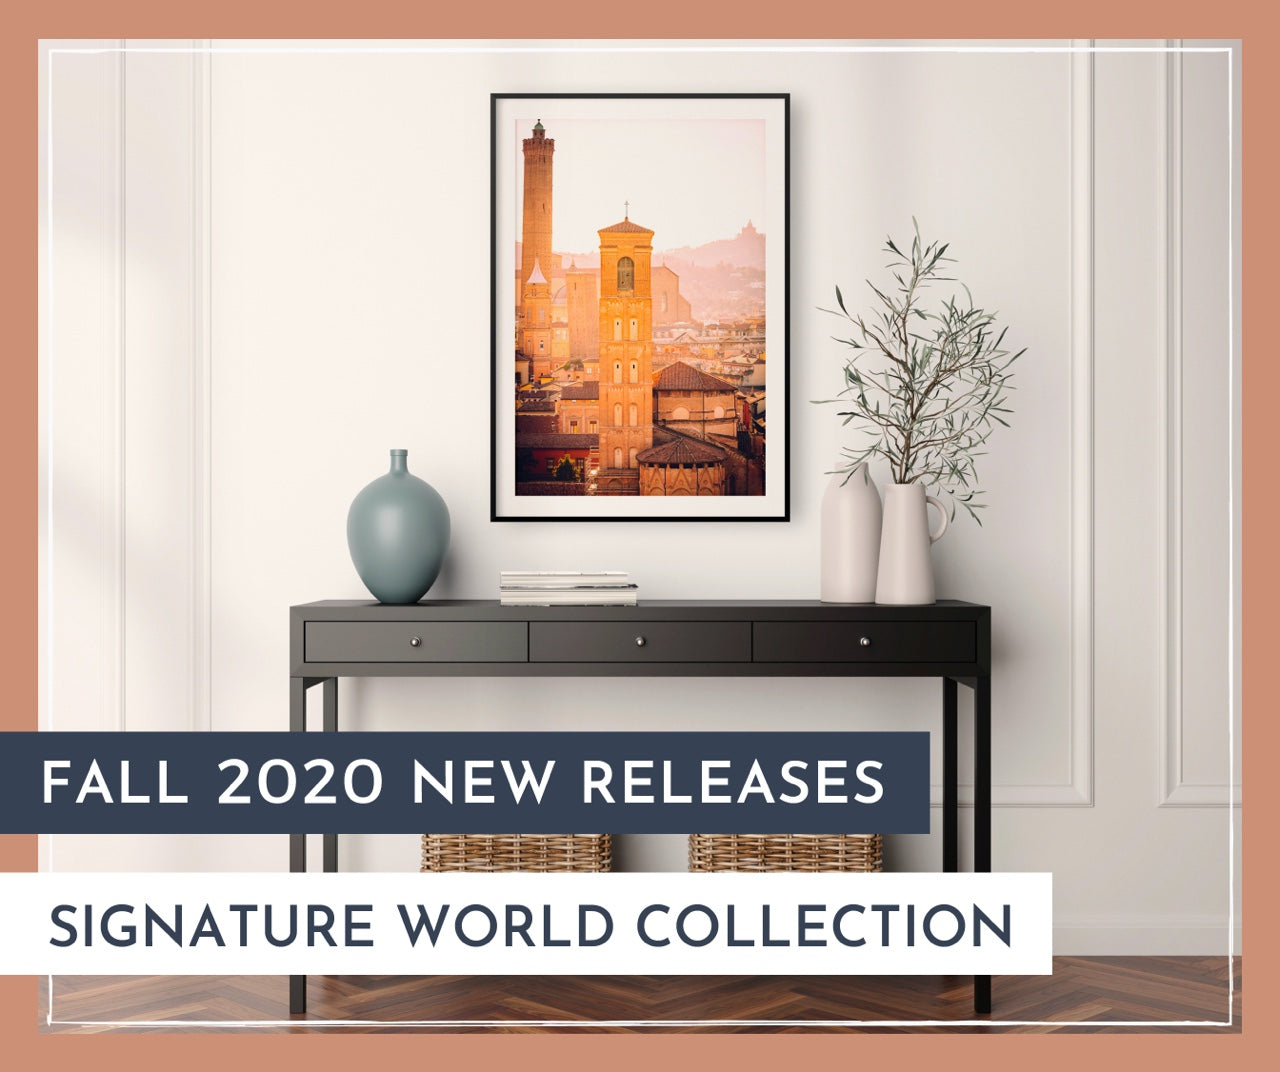 Fall 2020 New Releases - Signature World Collection